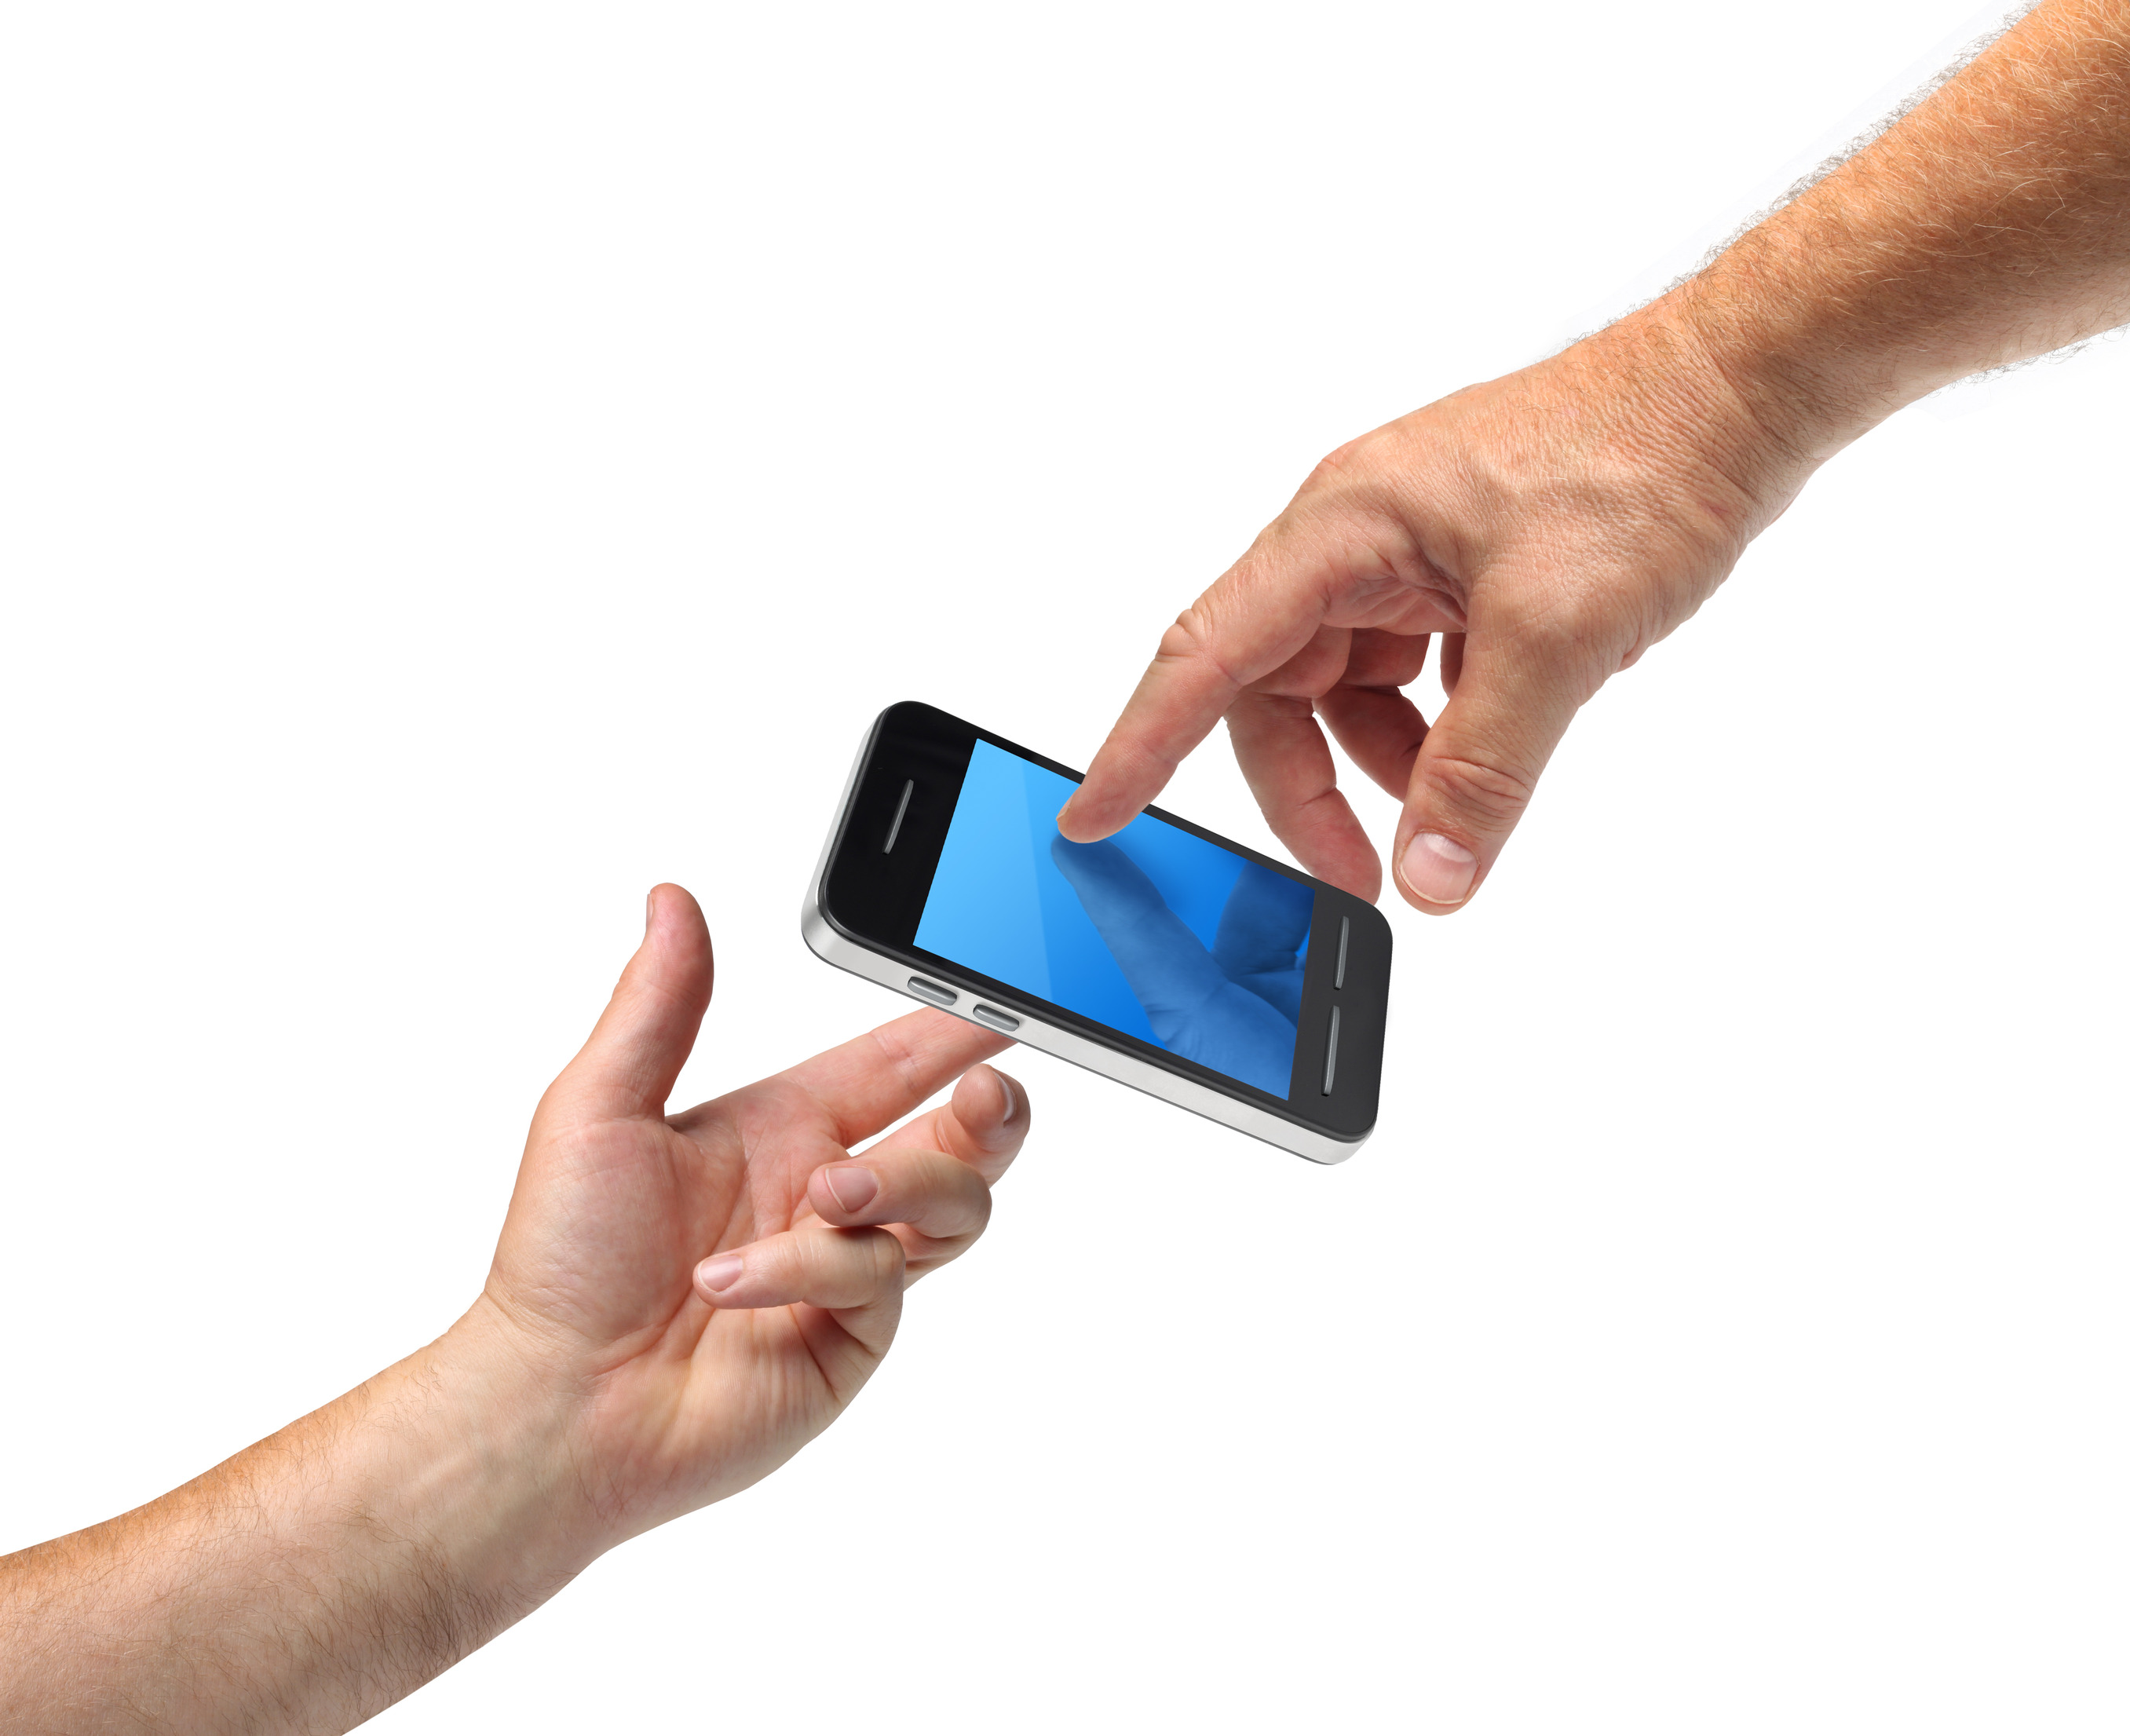 photodune-5603848-two-hands-reaching-smartphone-l.jpg